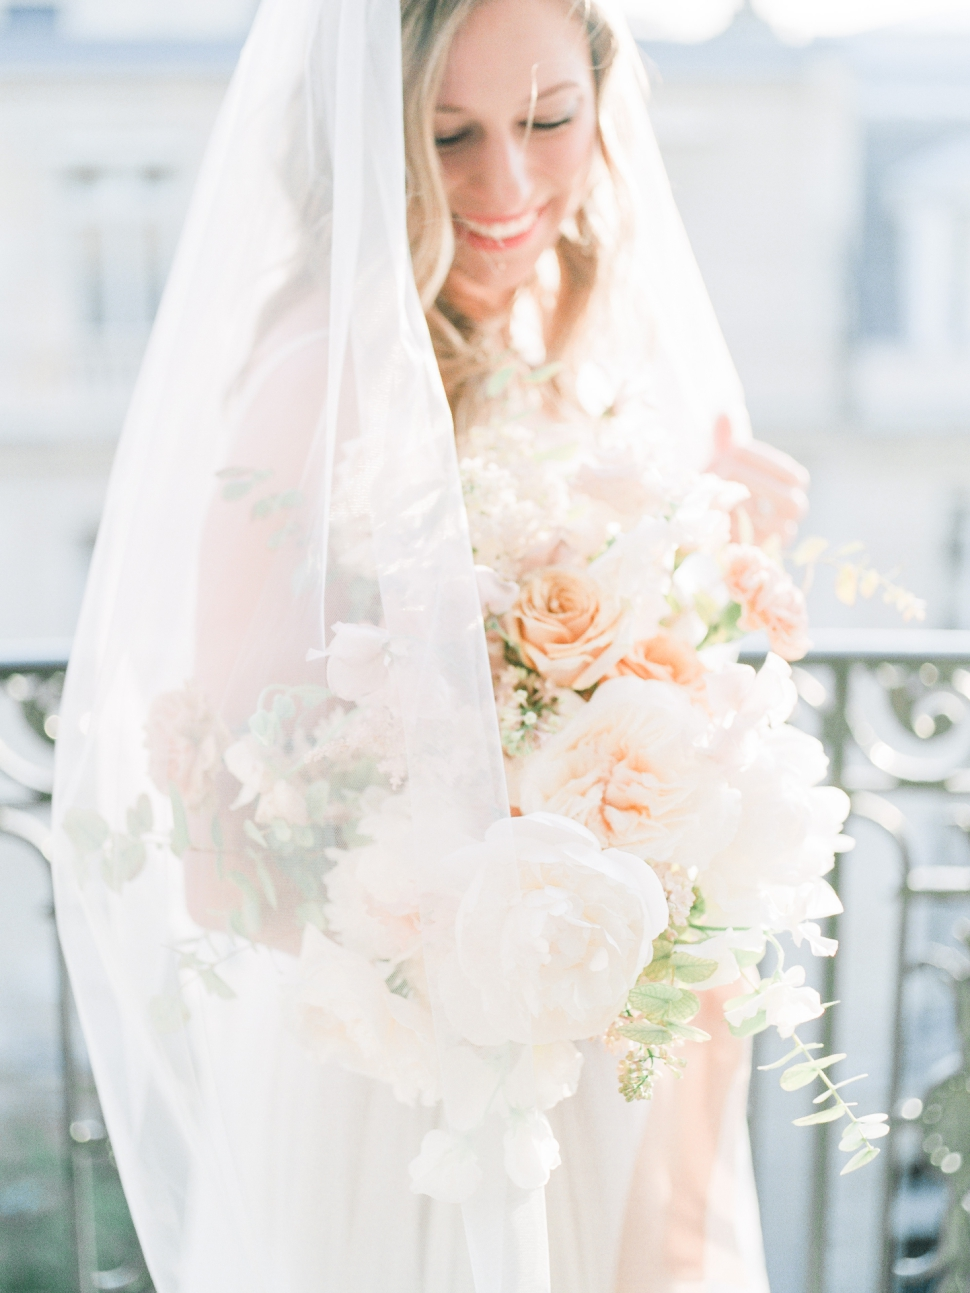 Paris-France-Destination-Wedding-Photographer-Cassi-Claire-Shangri-La-Paris-Wedding-Photos_042.jpg